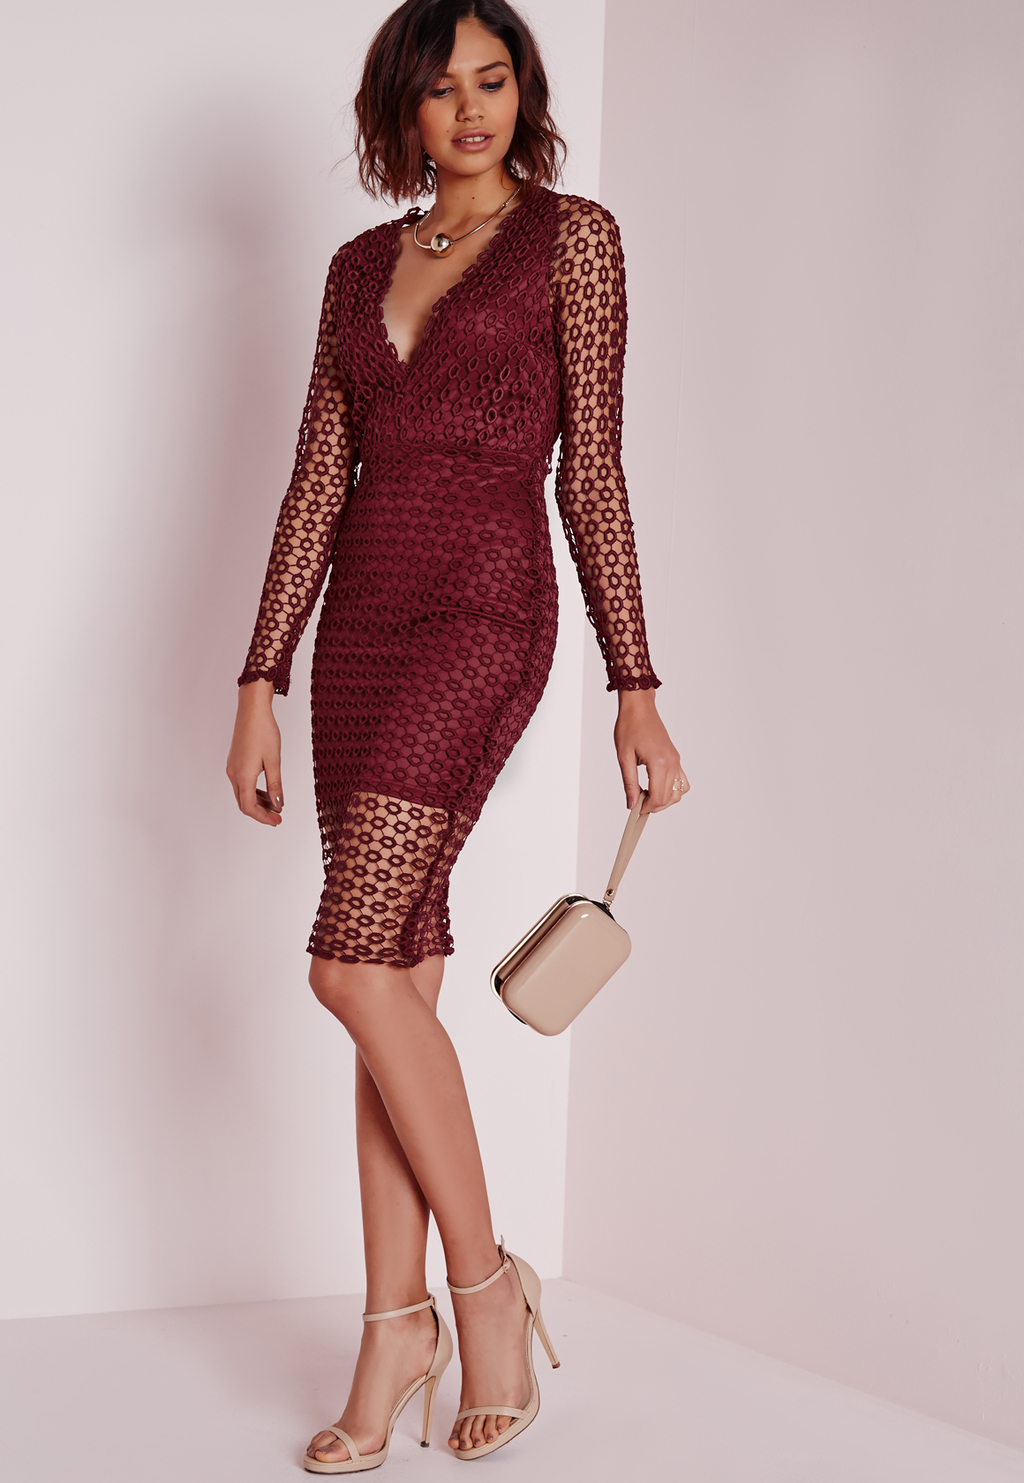 Circle Lace Midi Dress Burgundy, Burgundy - style: shift; neckline: low v-neck; predominant colour: burgundy; occasions: evening, occasion; length: just above the knee; fit: body skimming; fibres: polyester/polyamide - stretch; sleeve length: long sleeve; sleeve style: standard; texture group: lace; pattern type: fabric; pattern size: standard; pattern: patterned/print; season: a/w 2015; wardrobe: event